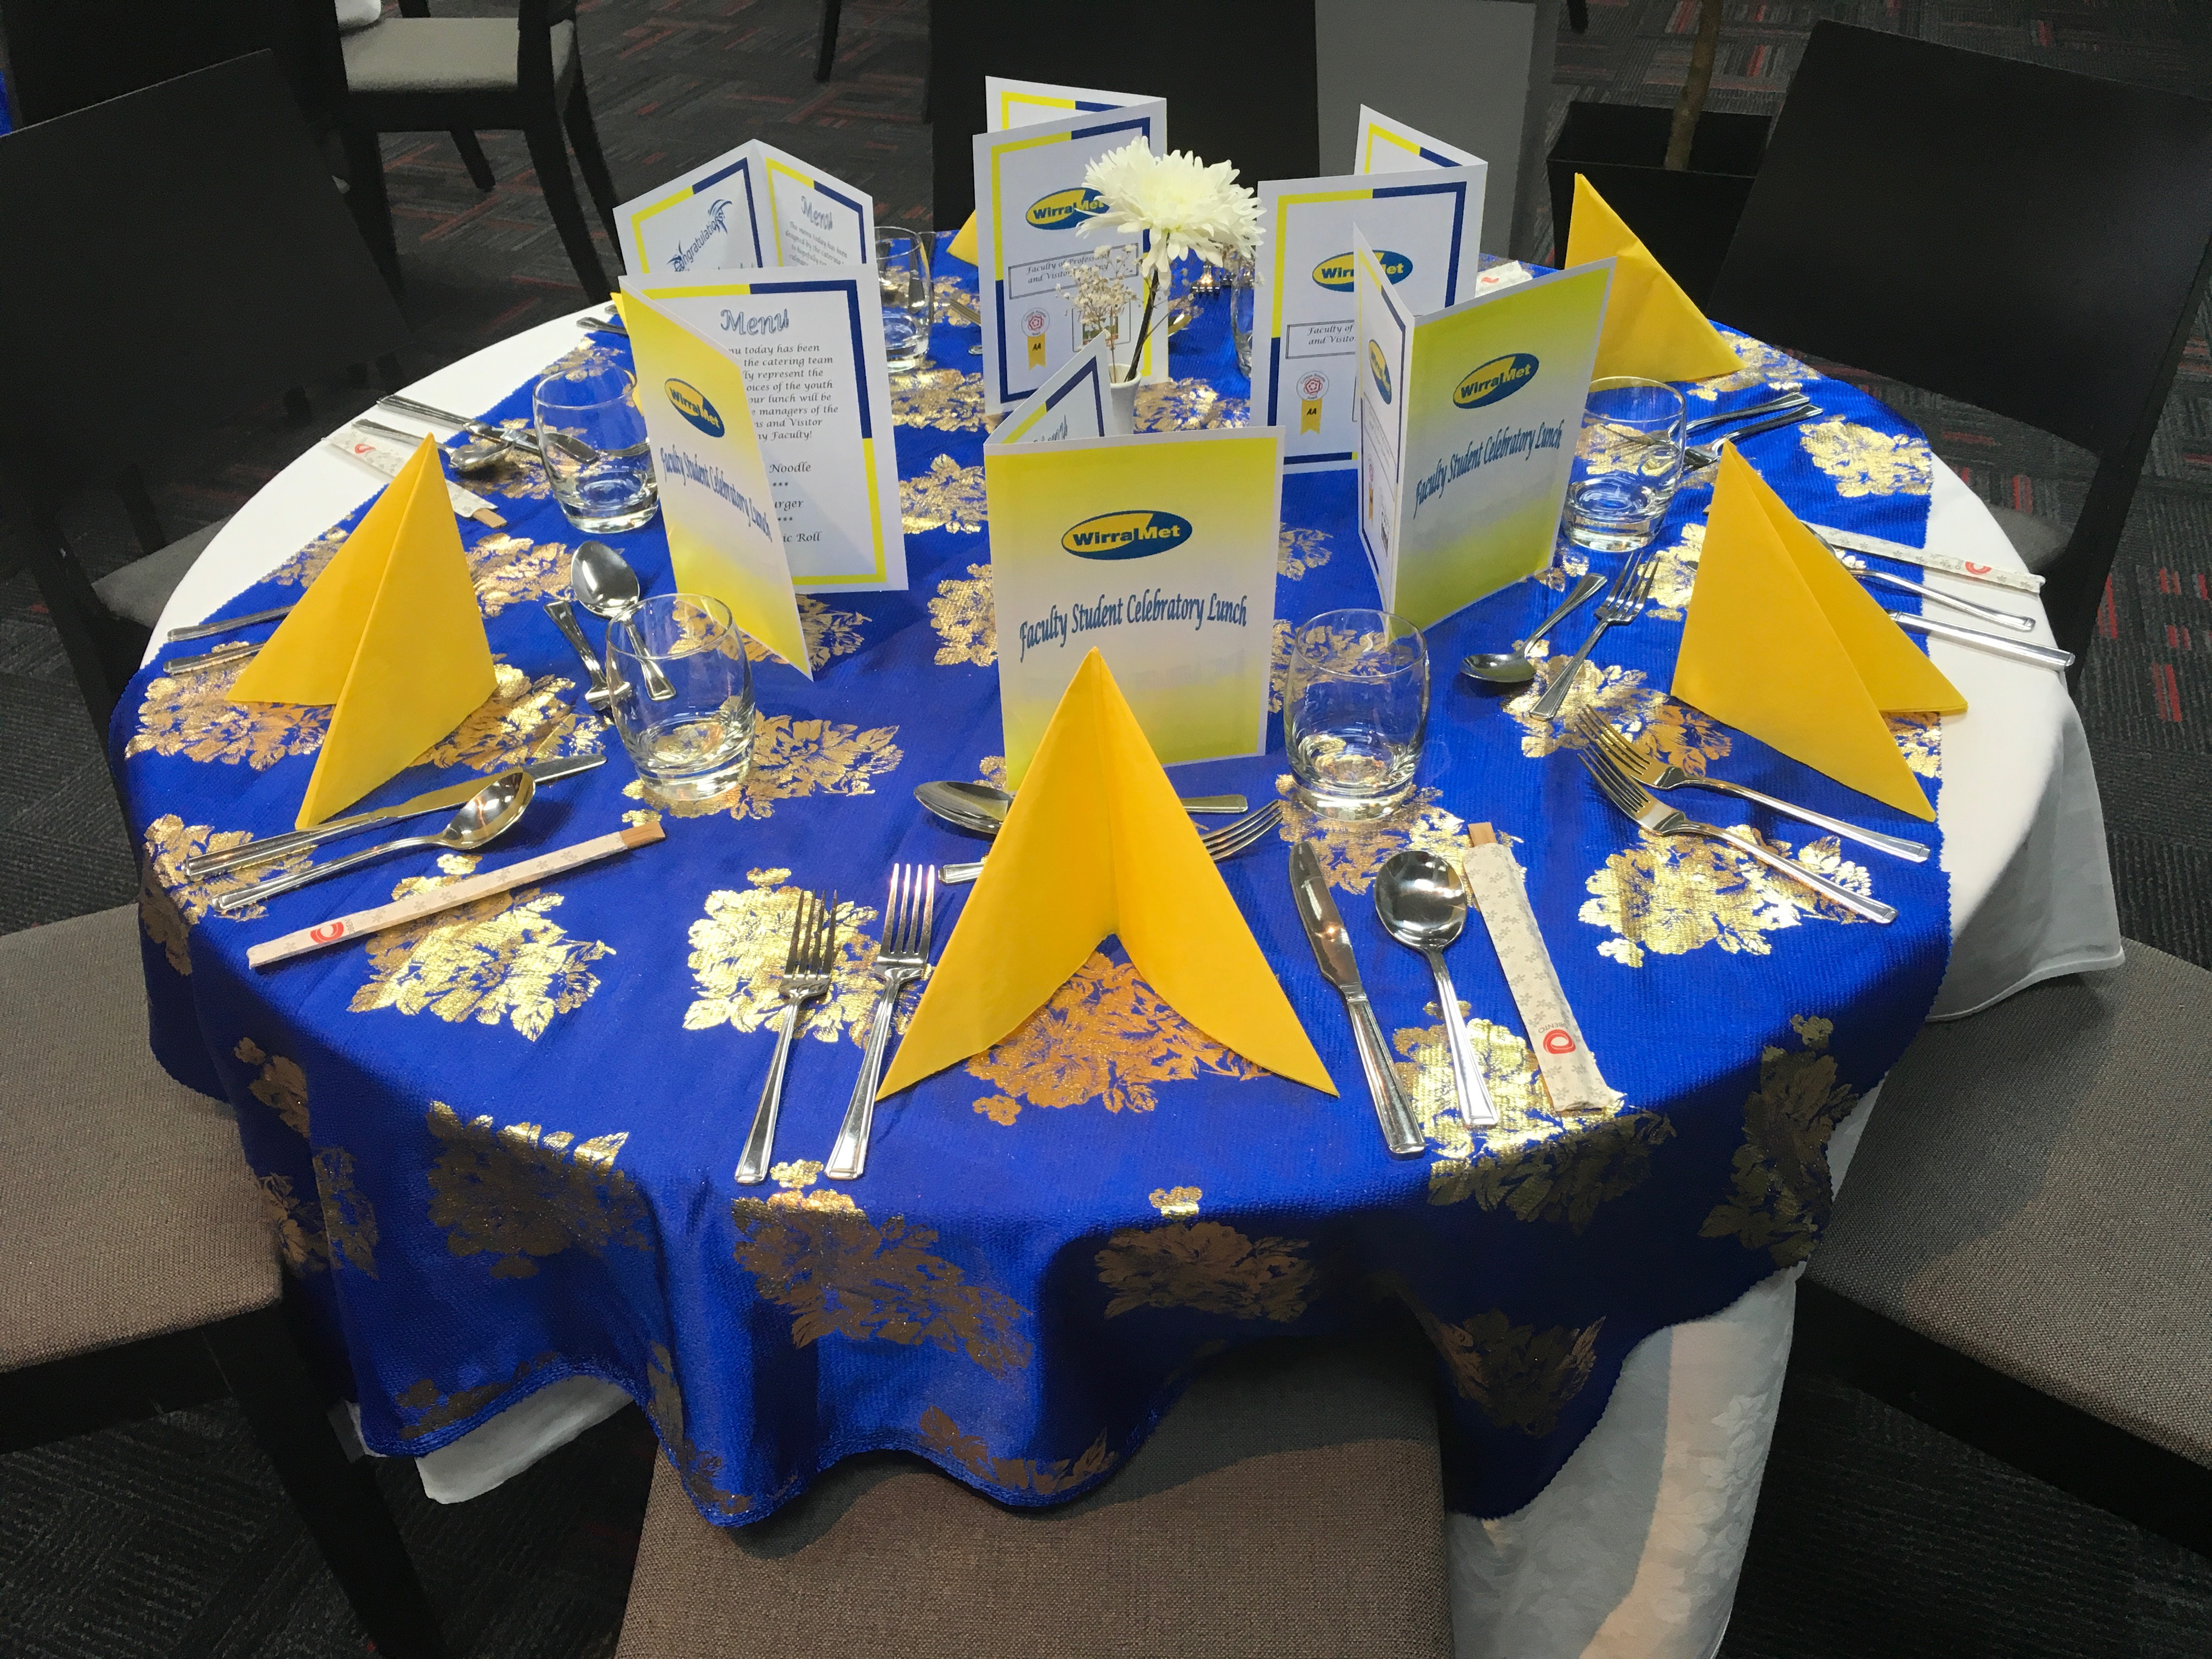 Wirral Met Student Celebratory Lunch 2017 dinner table